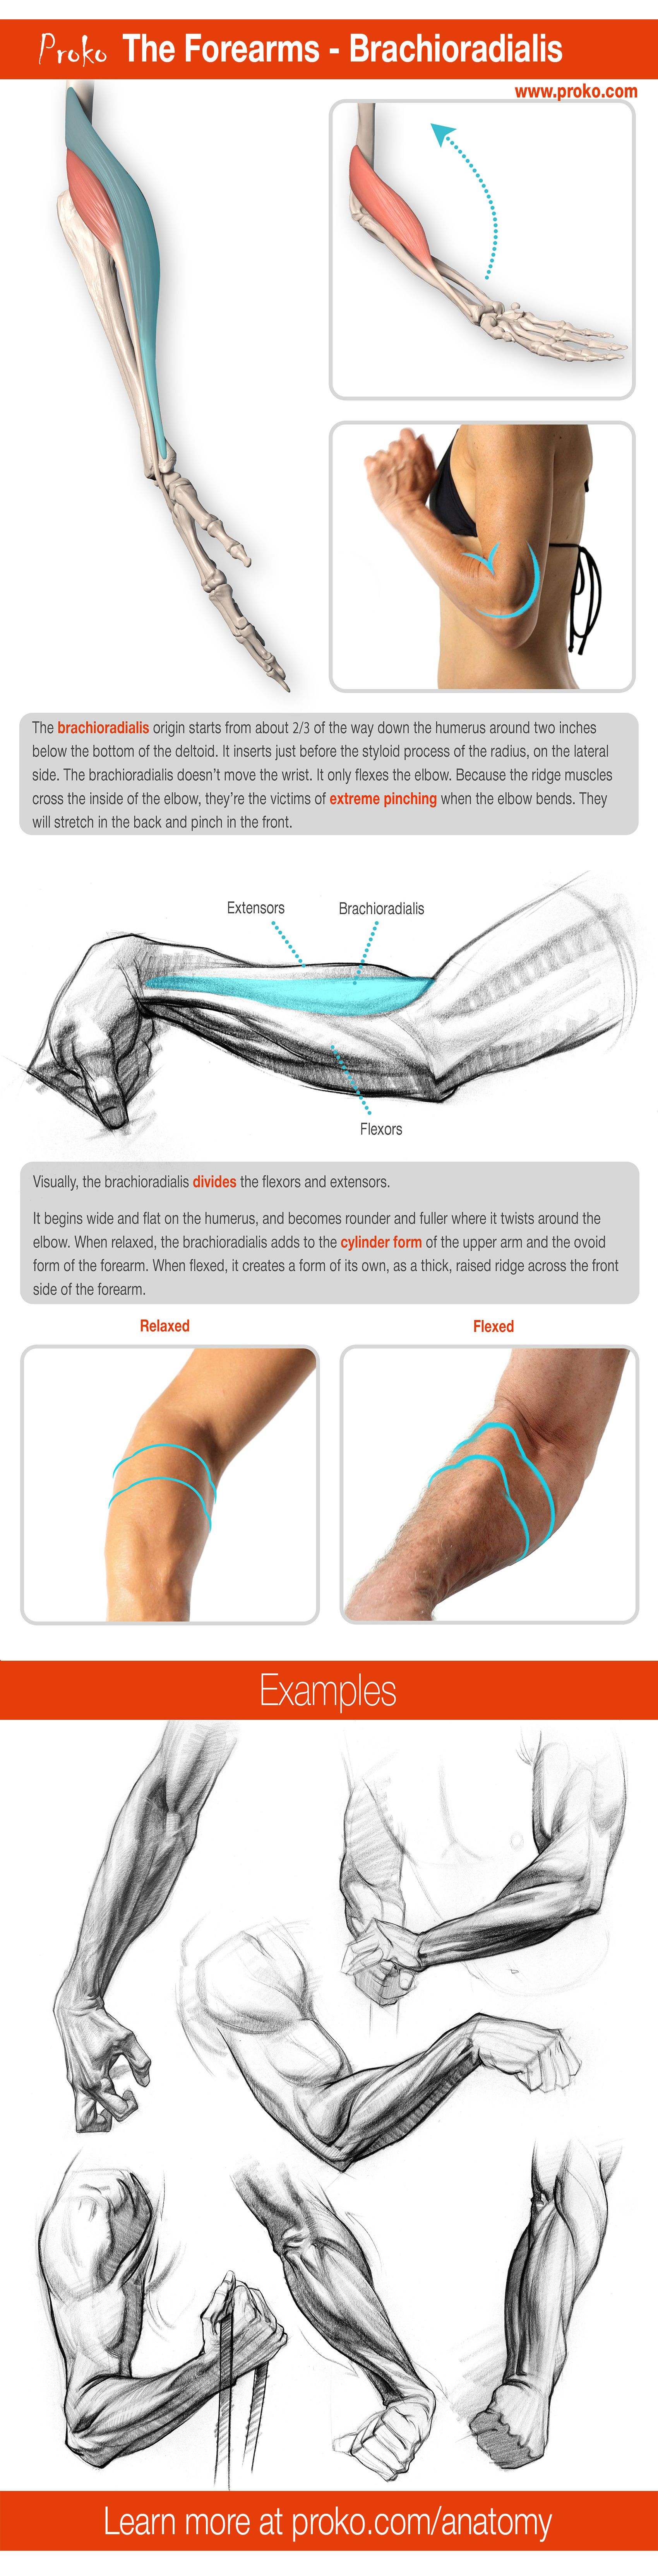 Anatomy of the Human Body for Artists Course | Anatomy, Drawings and ...